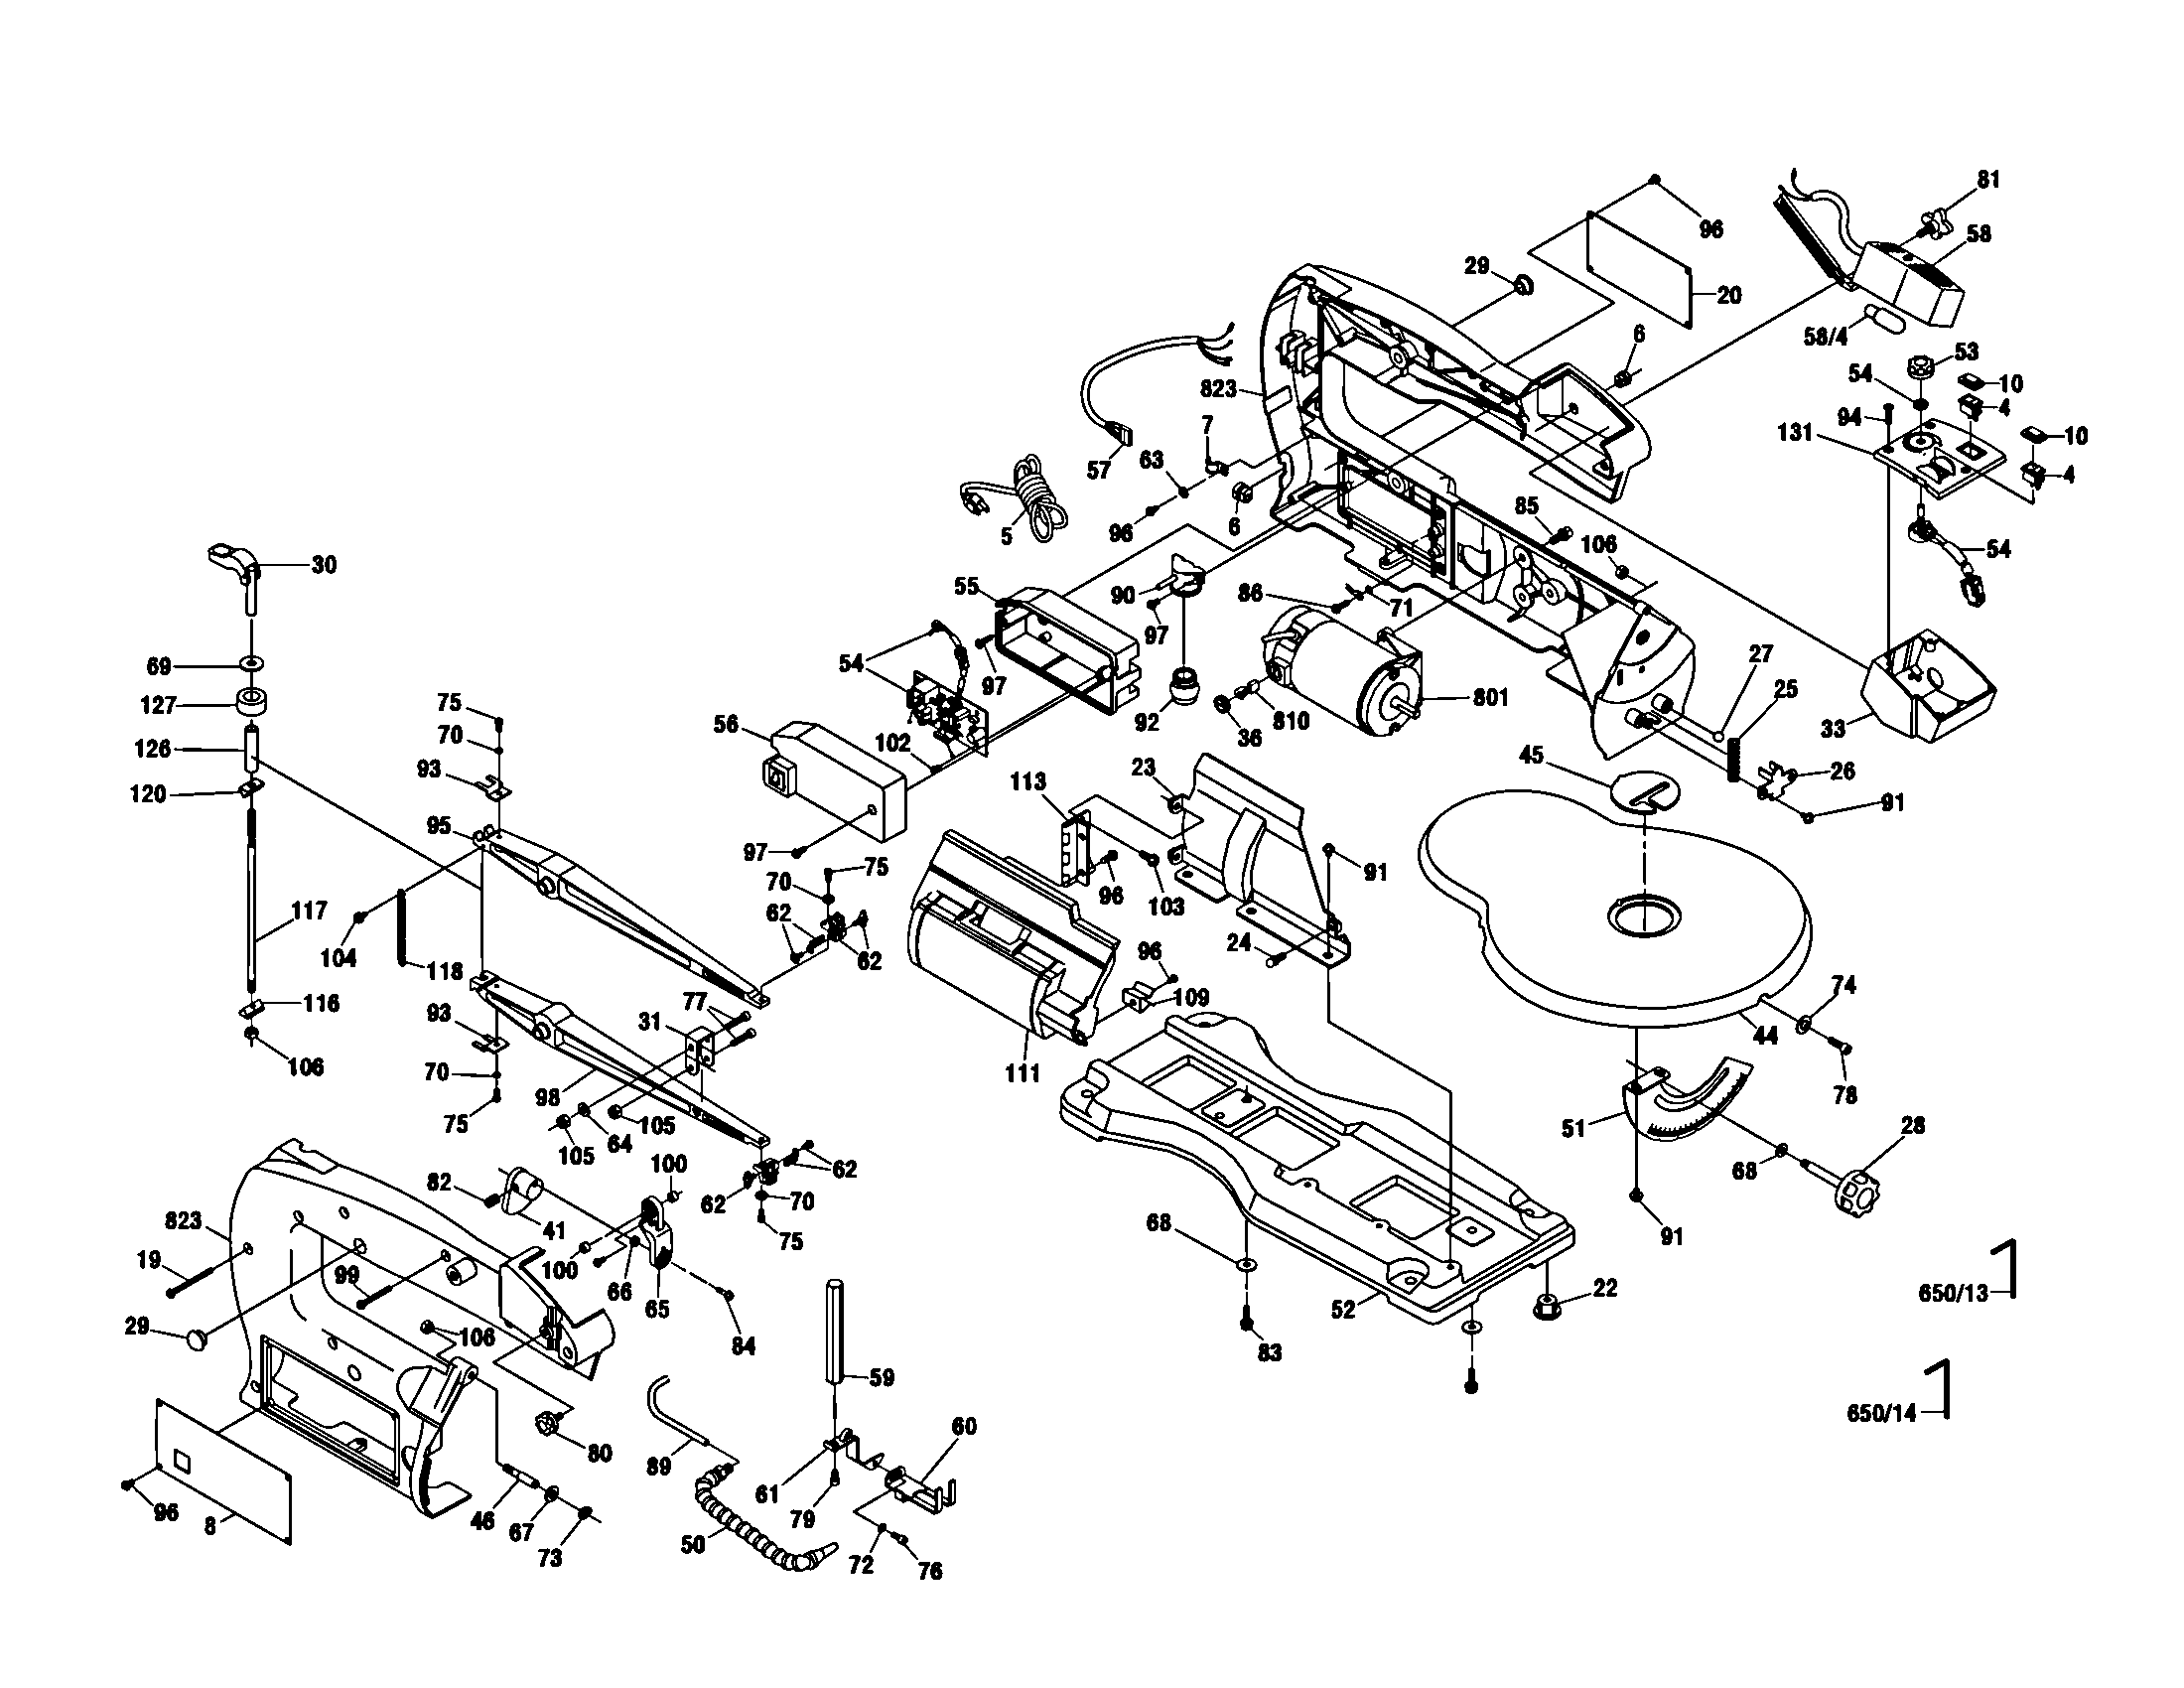 SCROLL SAW Diagram & Parts List for Model 1680 Dremel